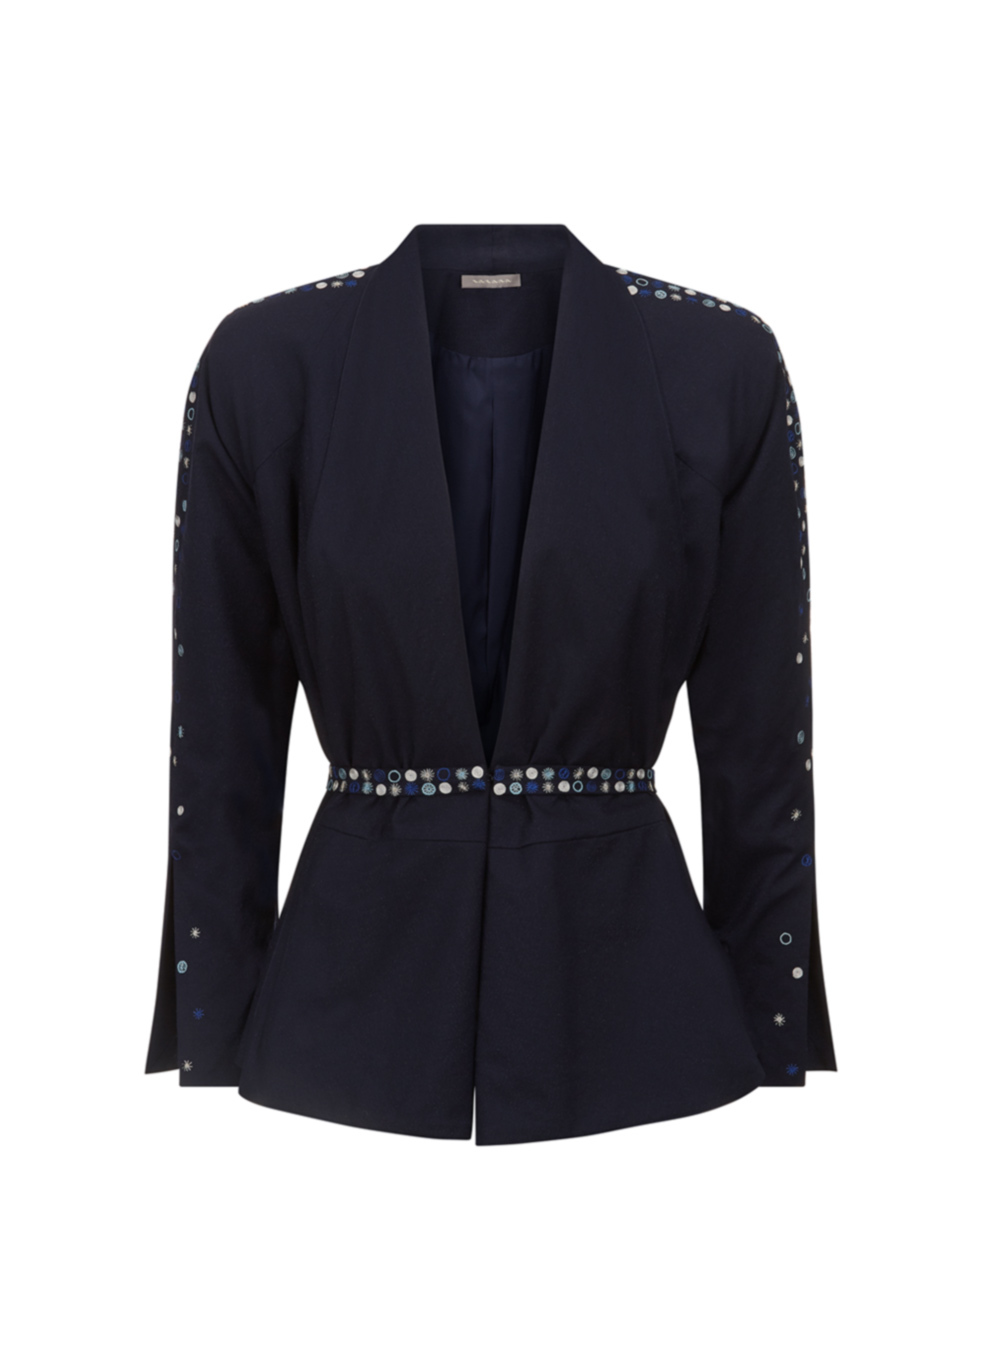 NAVY EMBROIDERED JACKET